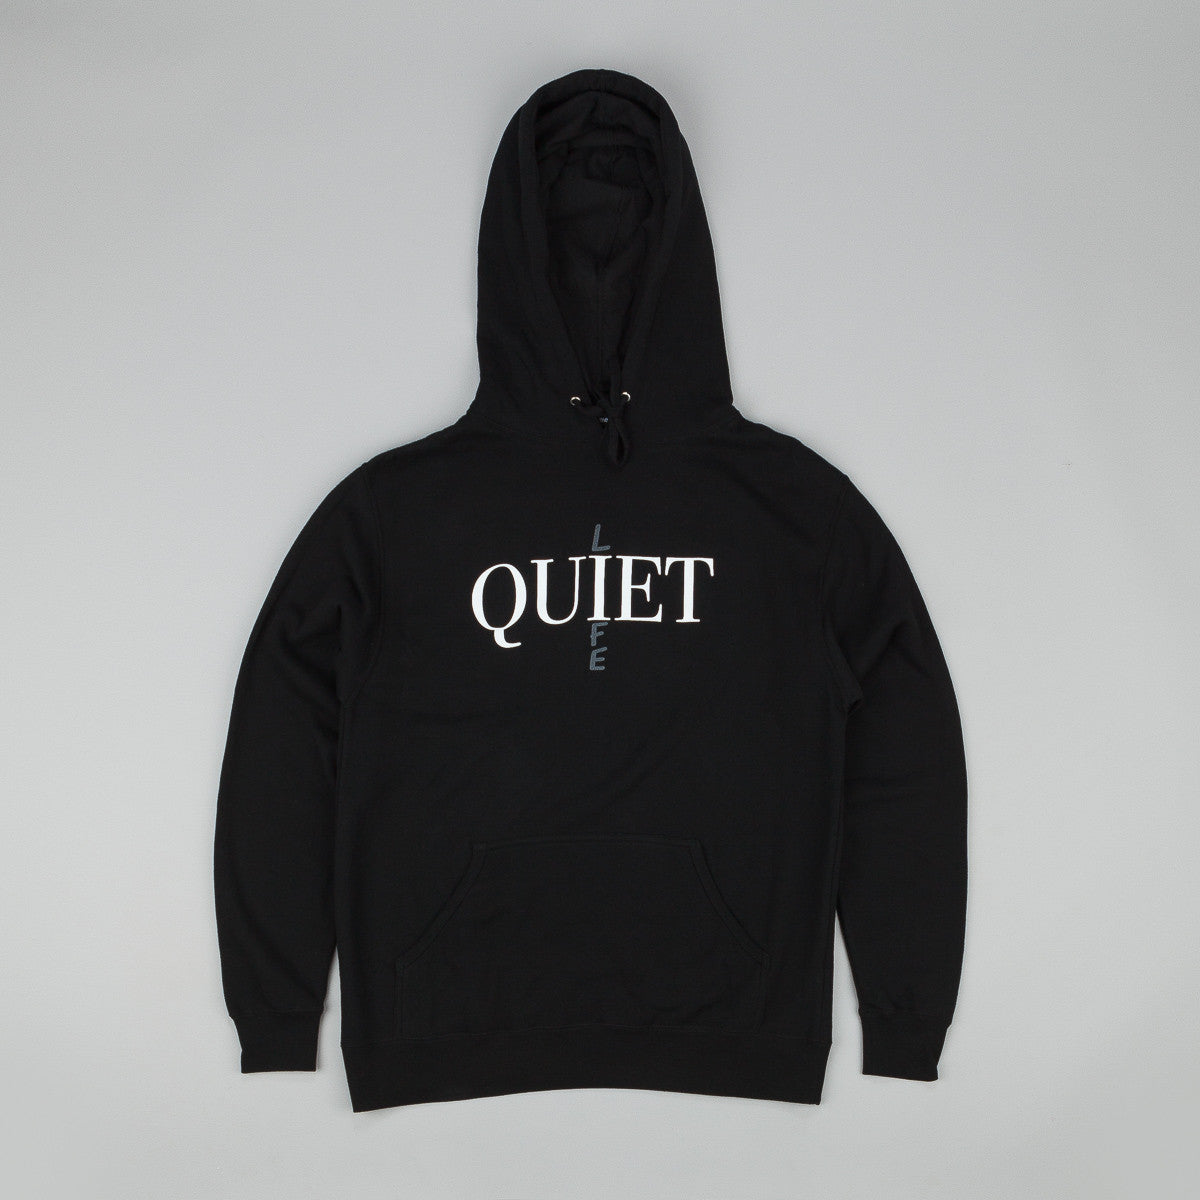 The Quiet Life Bodoni Hooded Sweatshirt - Black